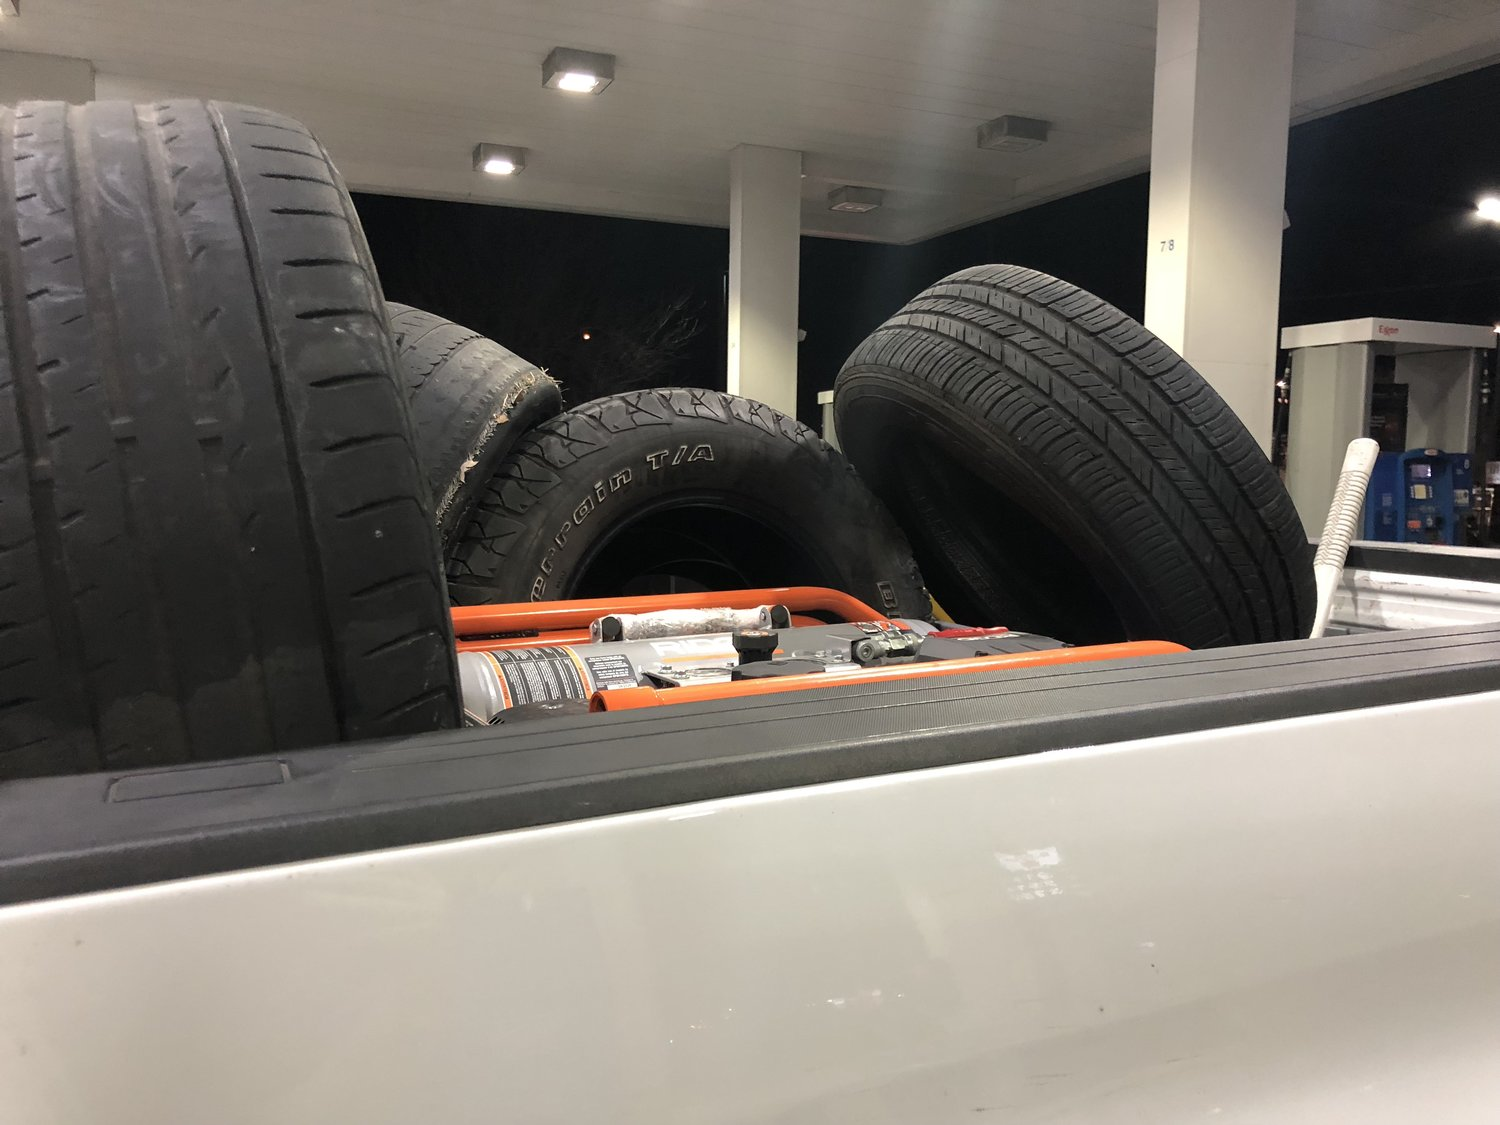 24 Hour Tire >> 24 Hour Tire Repair In San Antonio Texas 24 Hour Mobile Tire